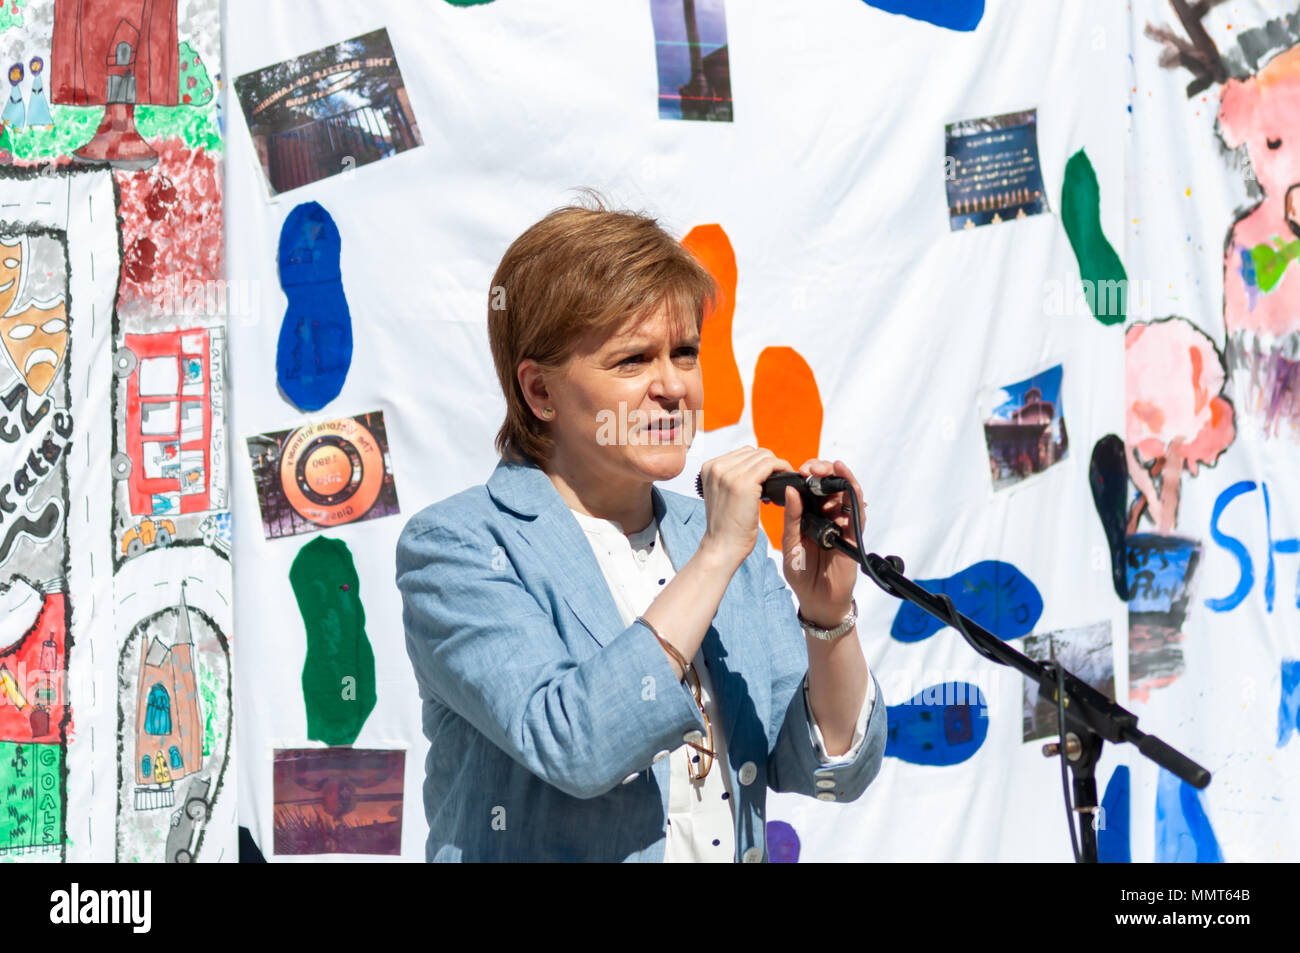 Glasgow, Scotland, UK. 13th May, 2018.  First Minister of Scotland Nicola Sturgeon giving a speech at Langside 450 which is part of the Southside Fringe and is held at The Arena in Queens Park which marks 450 years since the Battle of Langside. Credit: Skully/Alamy Live News - Stock Image